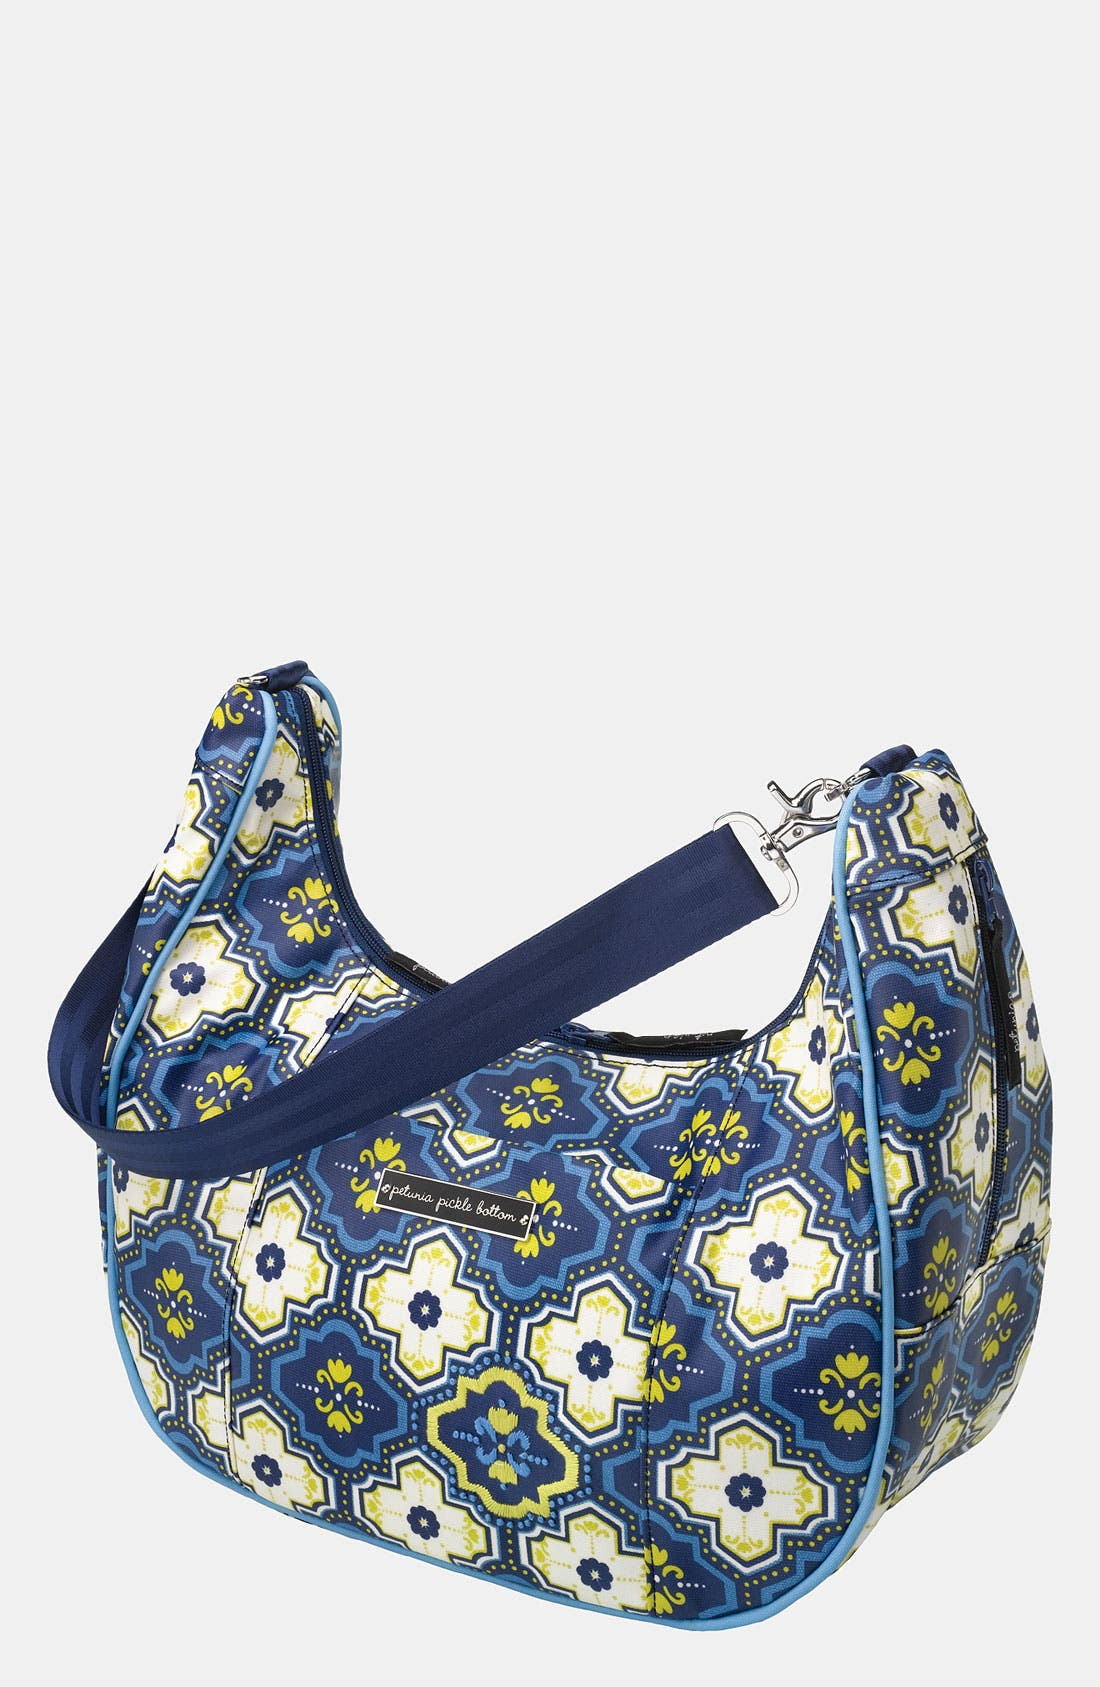 Alternate Image 1 Selected - Petunia Pickle Bottom 'Touring Tote' Glazed Diaper Bag